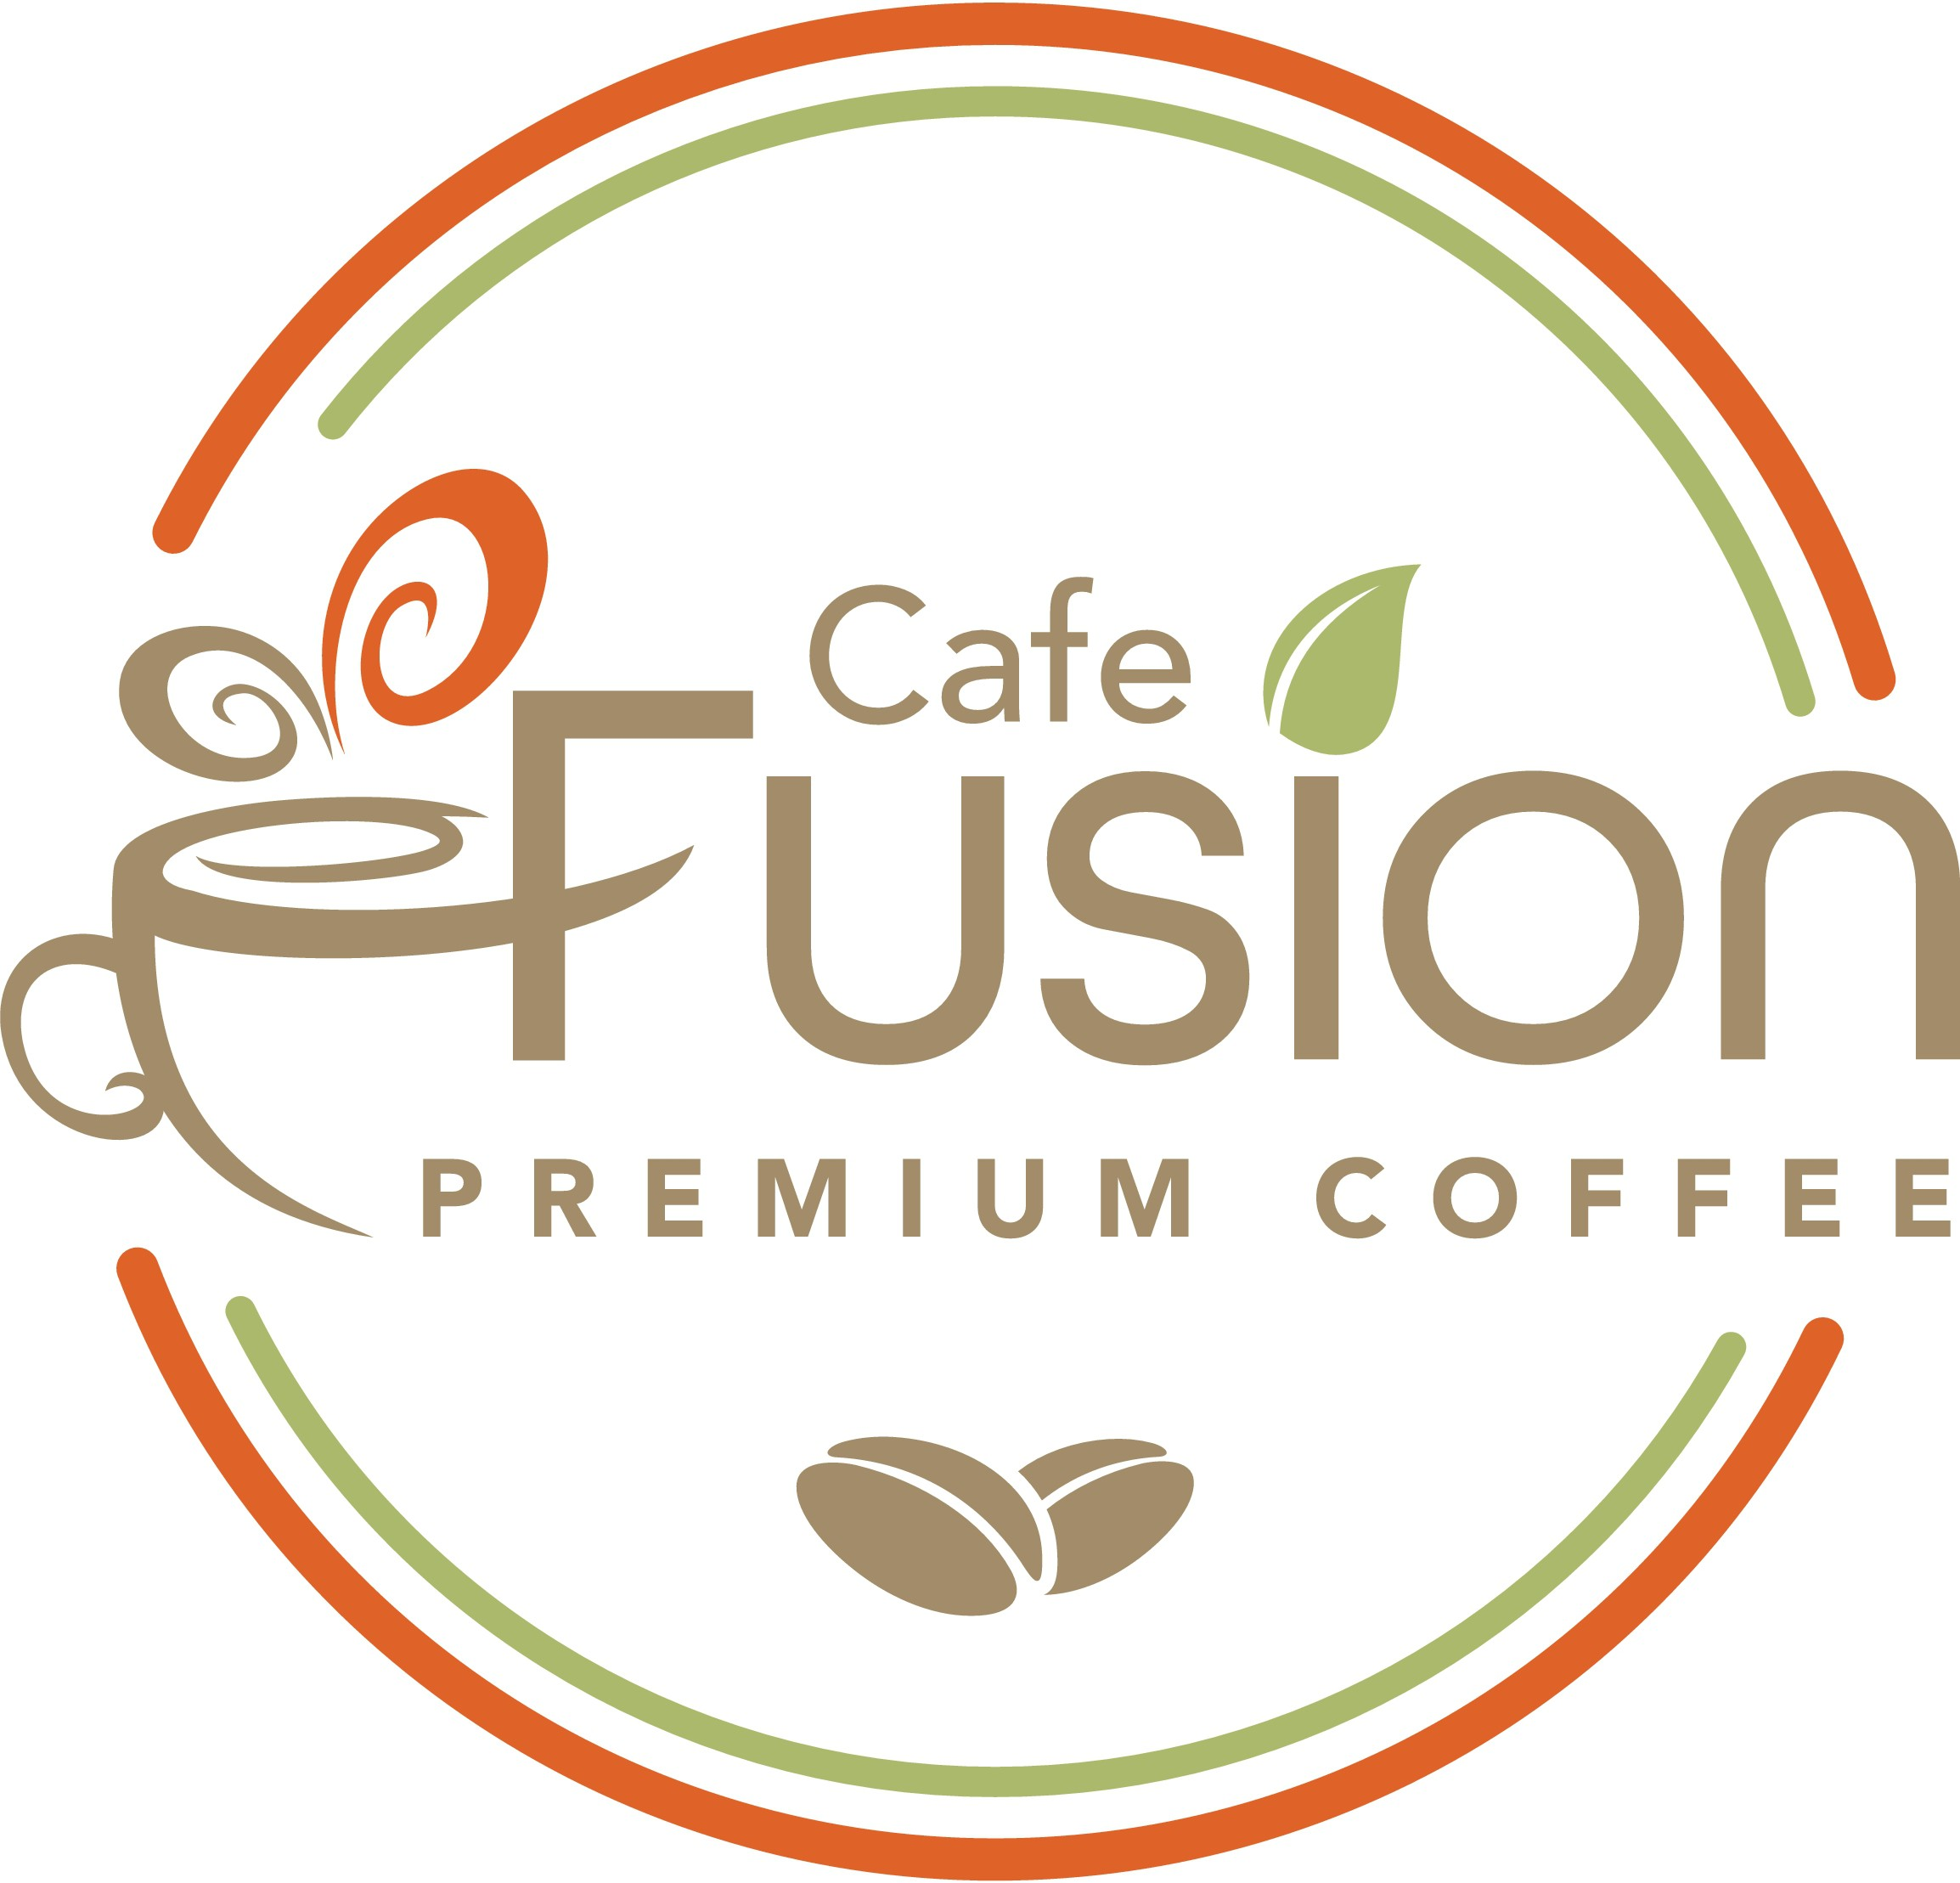 Create a logo for Cafe Fusion Premium Coffee that will make you want to pick it up off the shelves